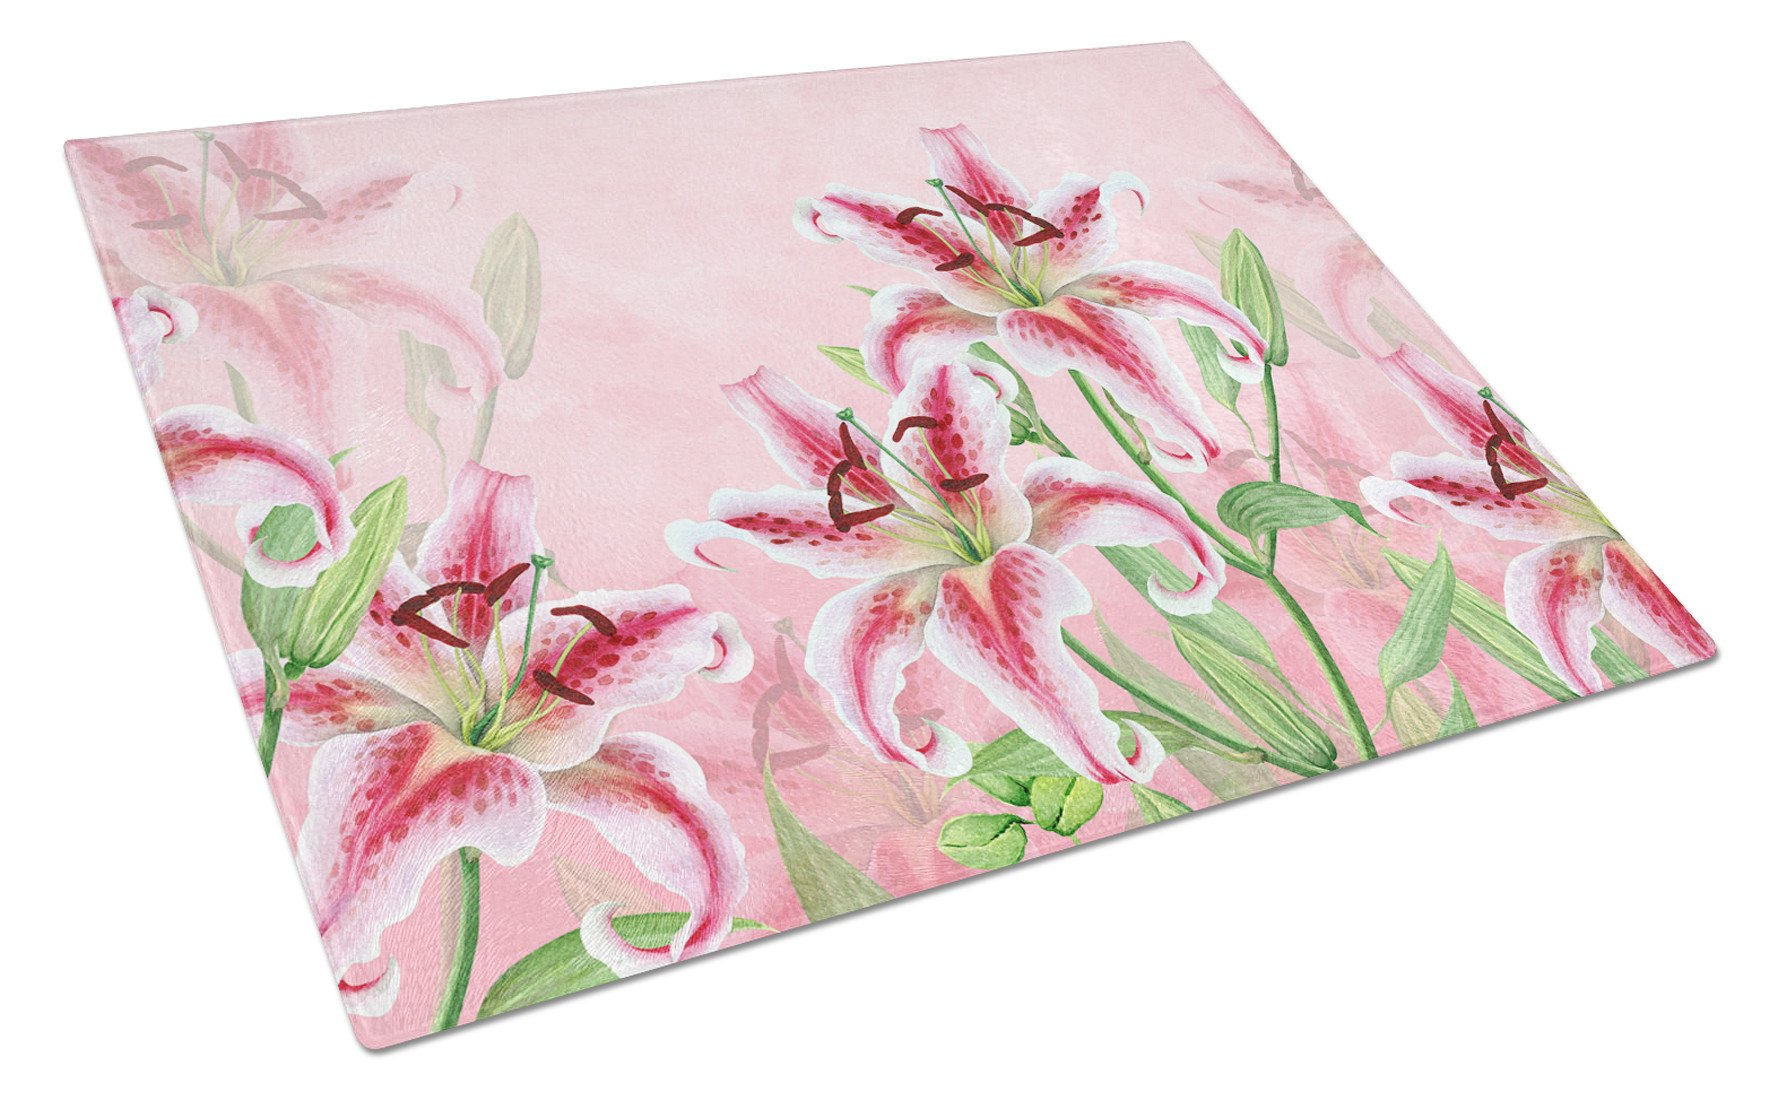 Pink Lillies Glass Cutting Board Large BB7446LCB by Caroline's Treasures